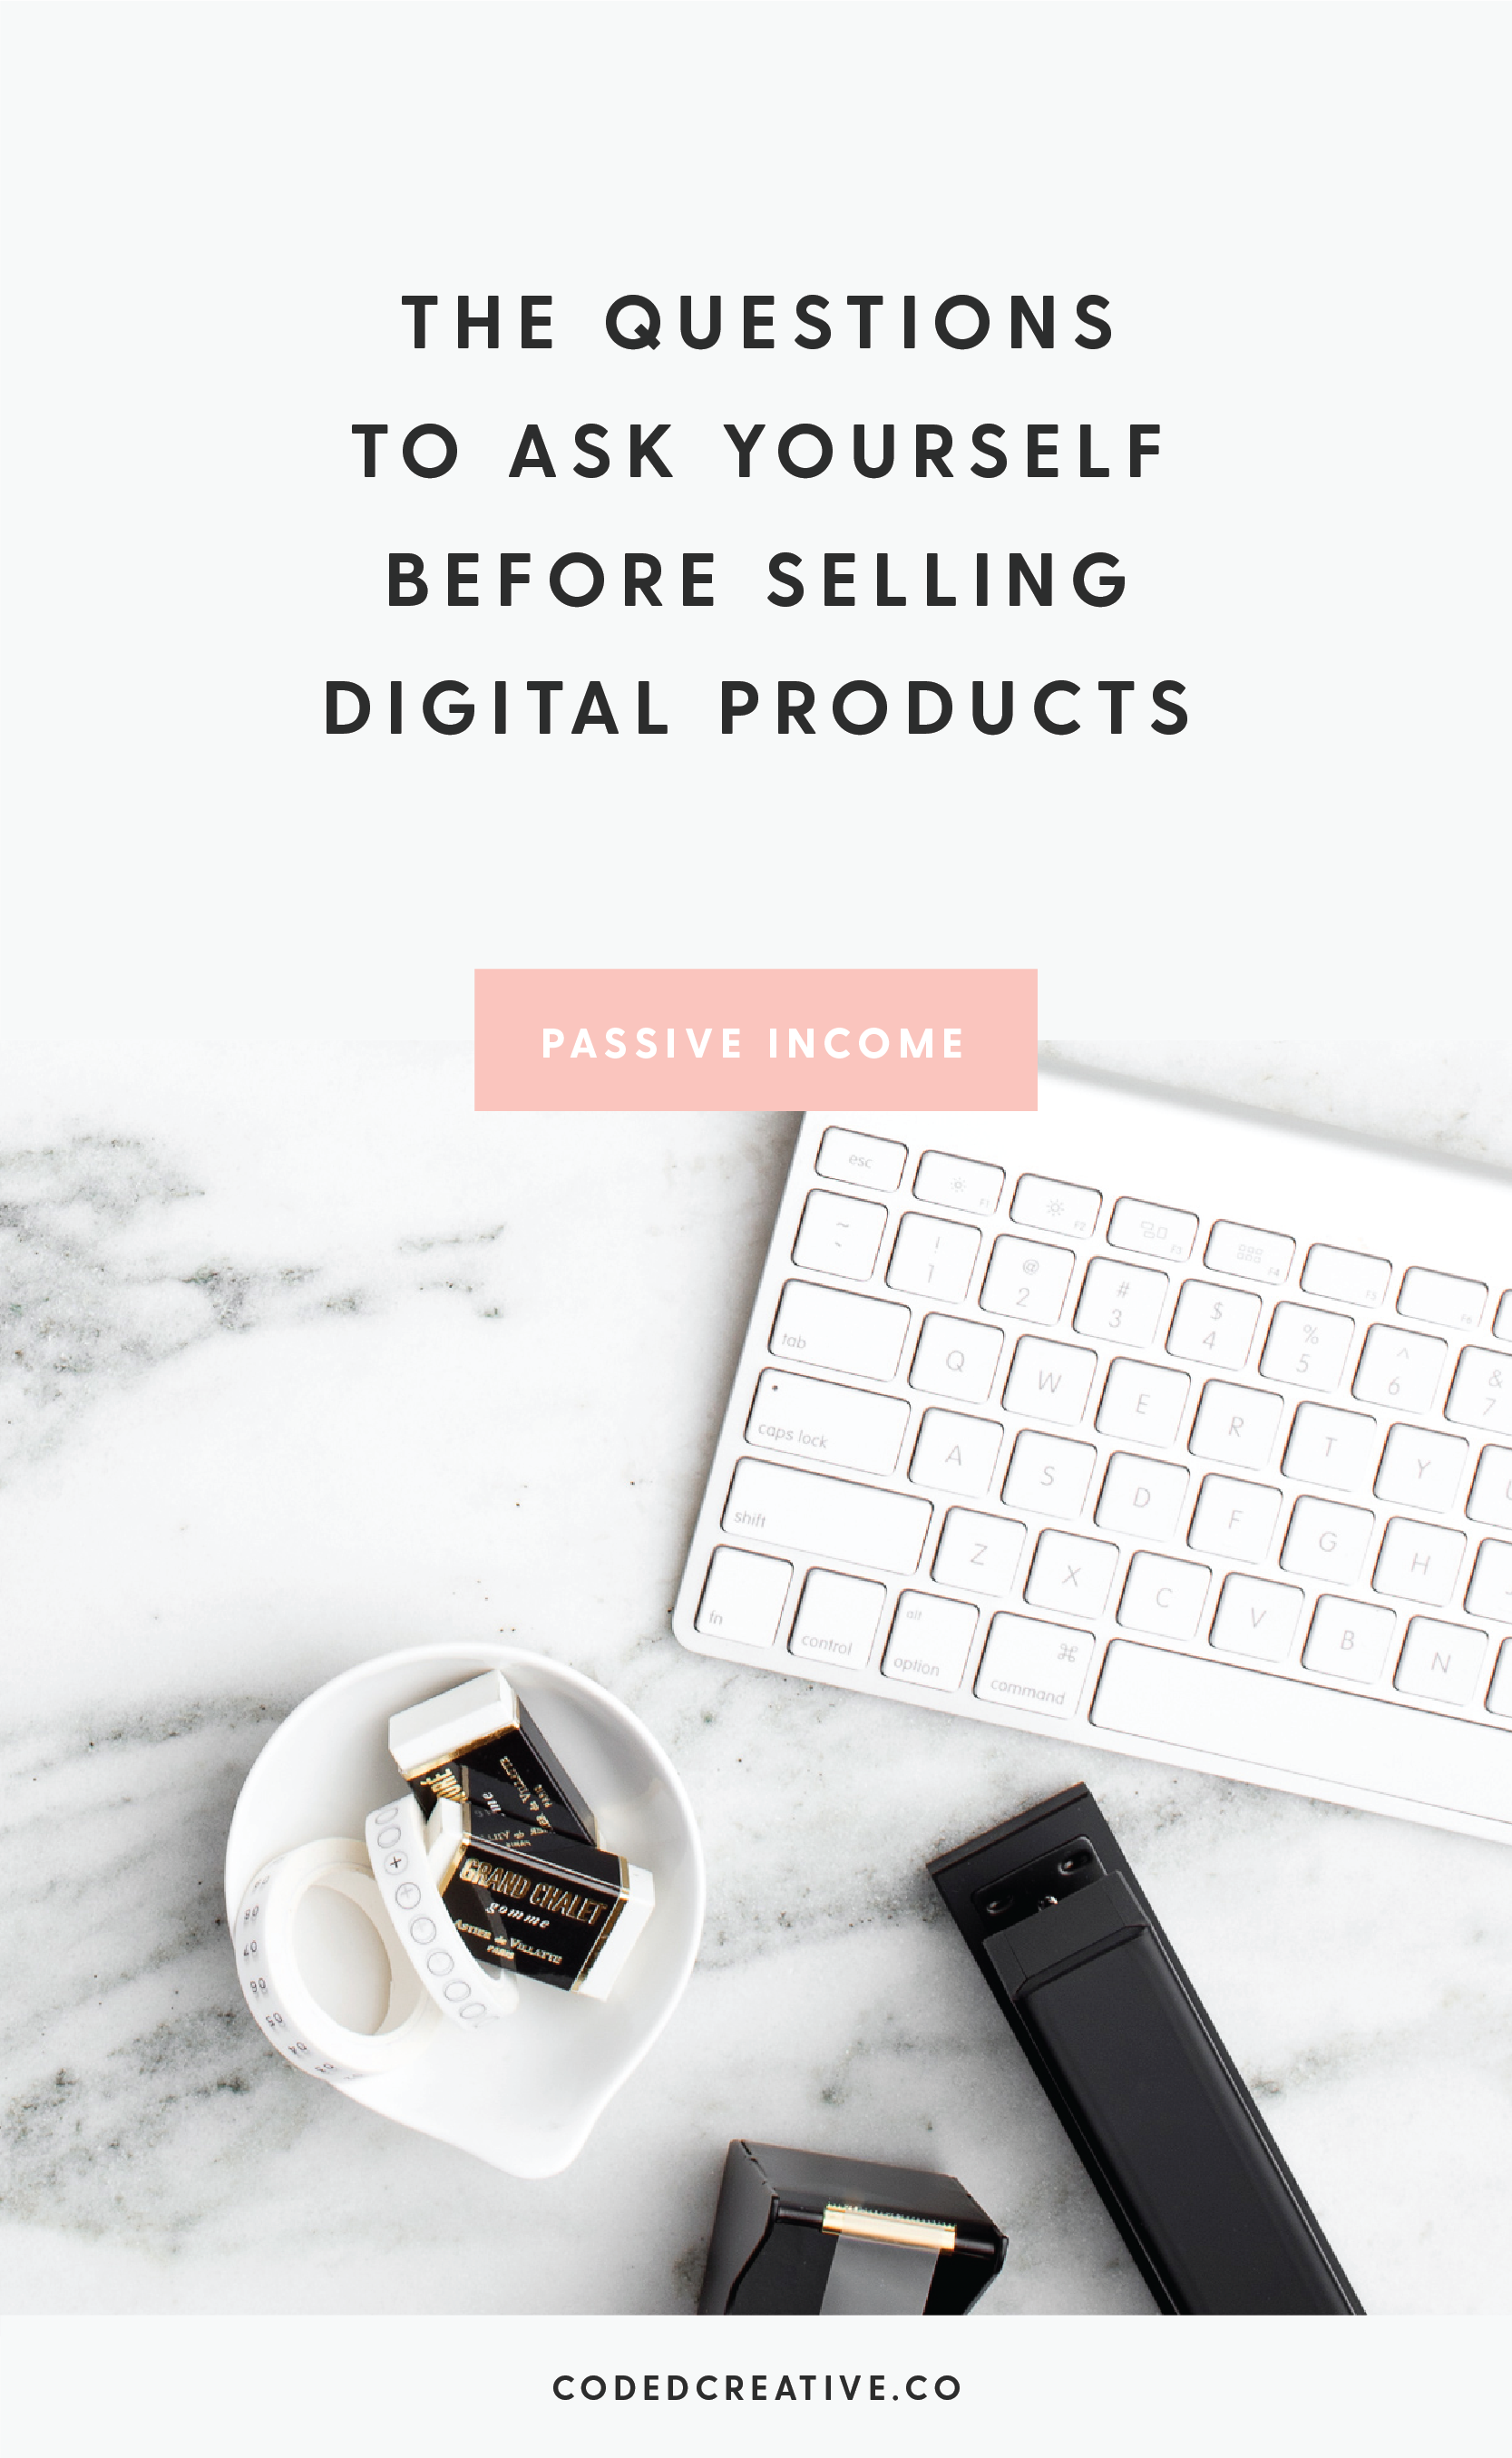 Over the past couple of weeks I've been talking about how lifestyle bloggers can monetize their blog, specifically by creating digital products for their audience. Today I'm giving you five questions to ask yourself before moving forward with creating and selling digital products to your audience.